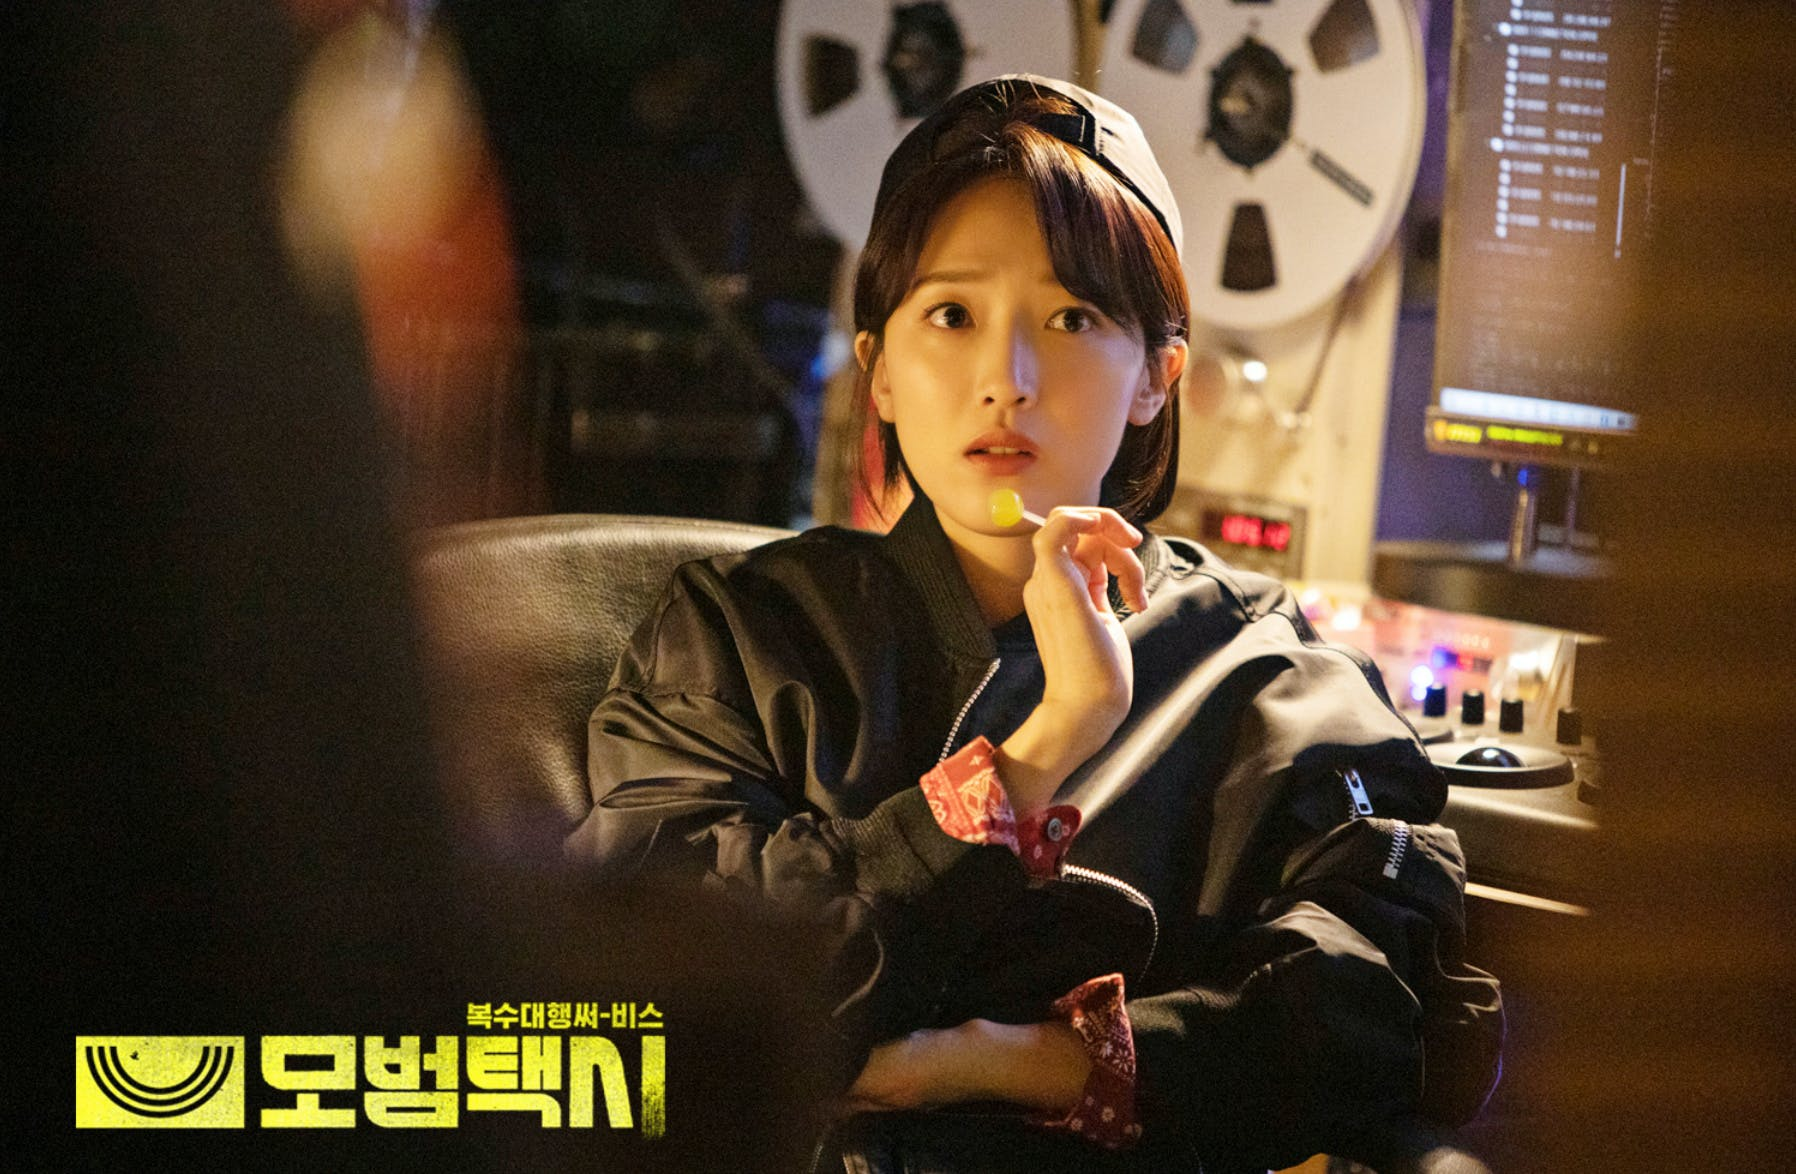 Taxi Driver episode 8 release date